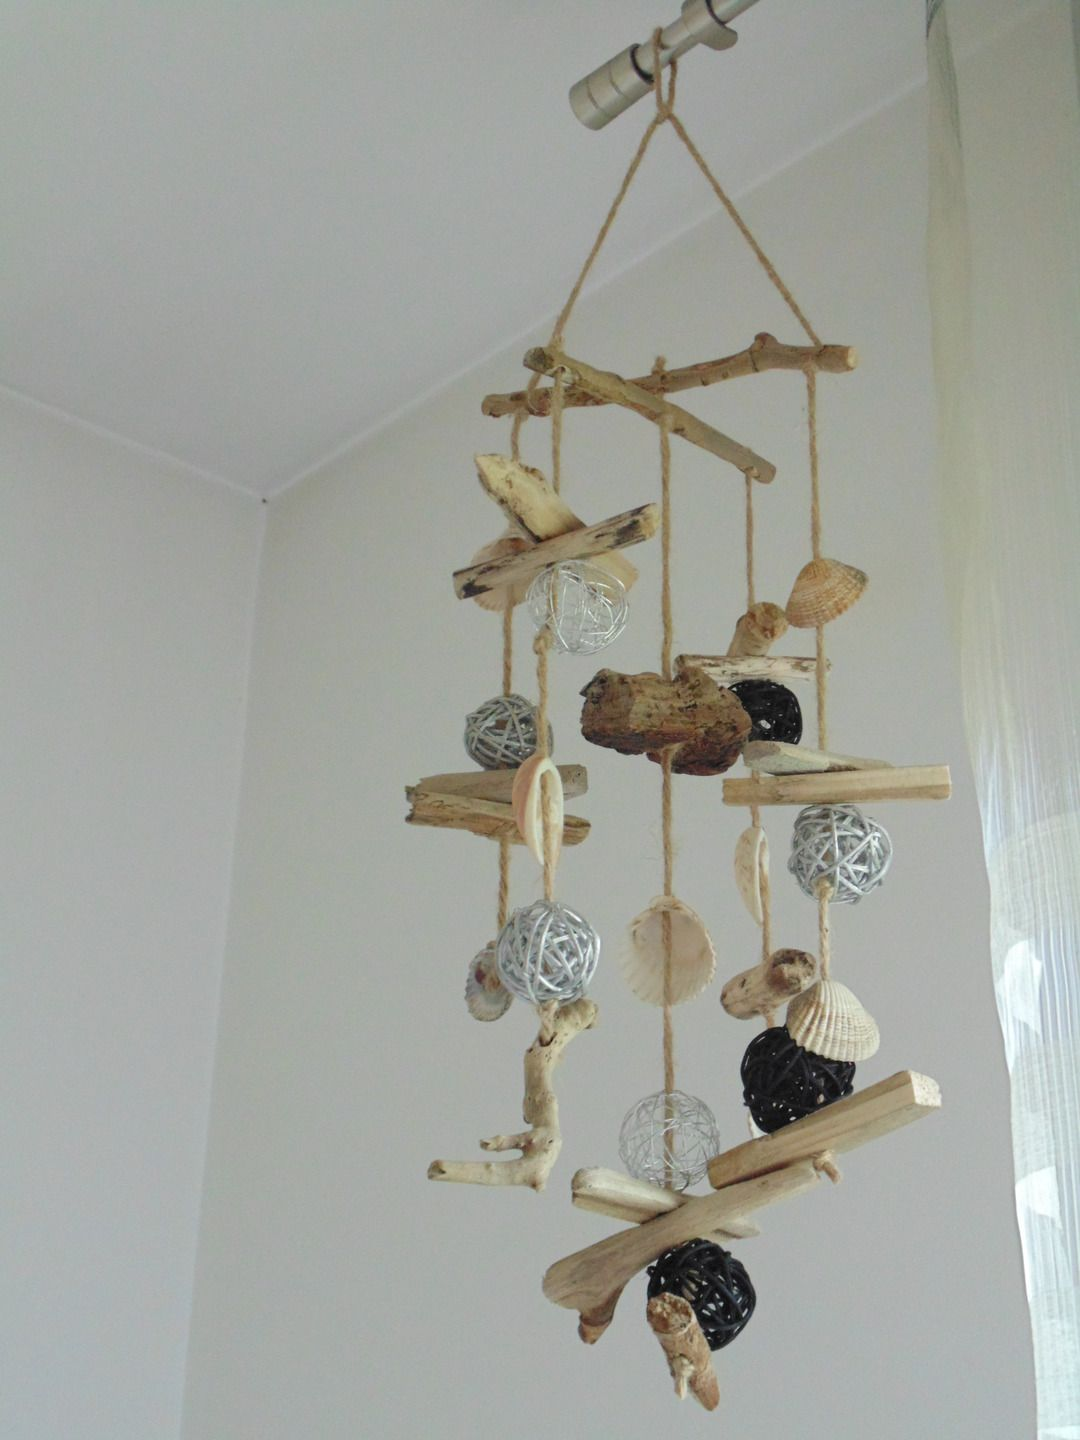 Mobile suspension d co en bois flott coquillages et boules rotin d corations murales par - Guirlande bois flotte ...